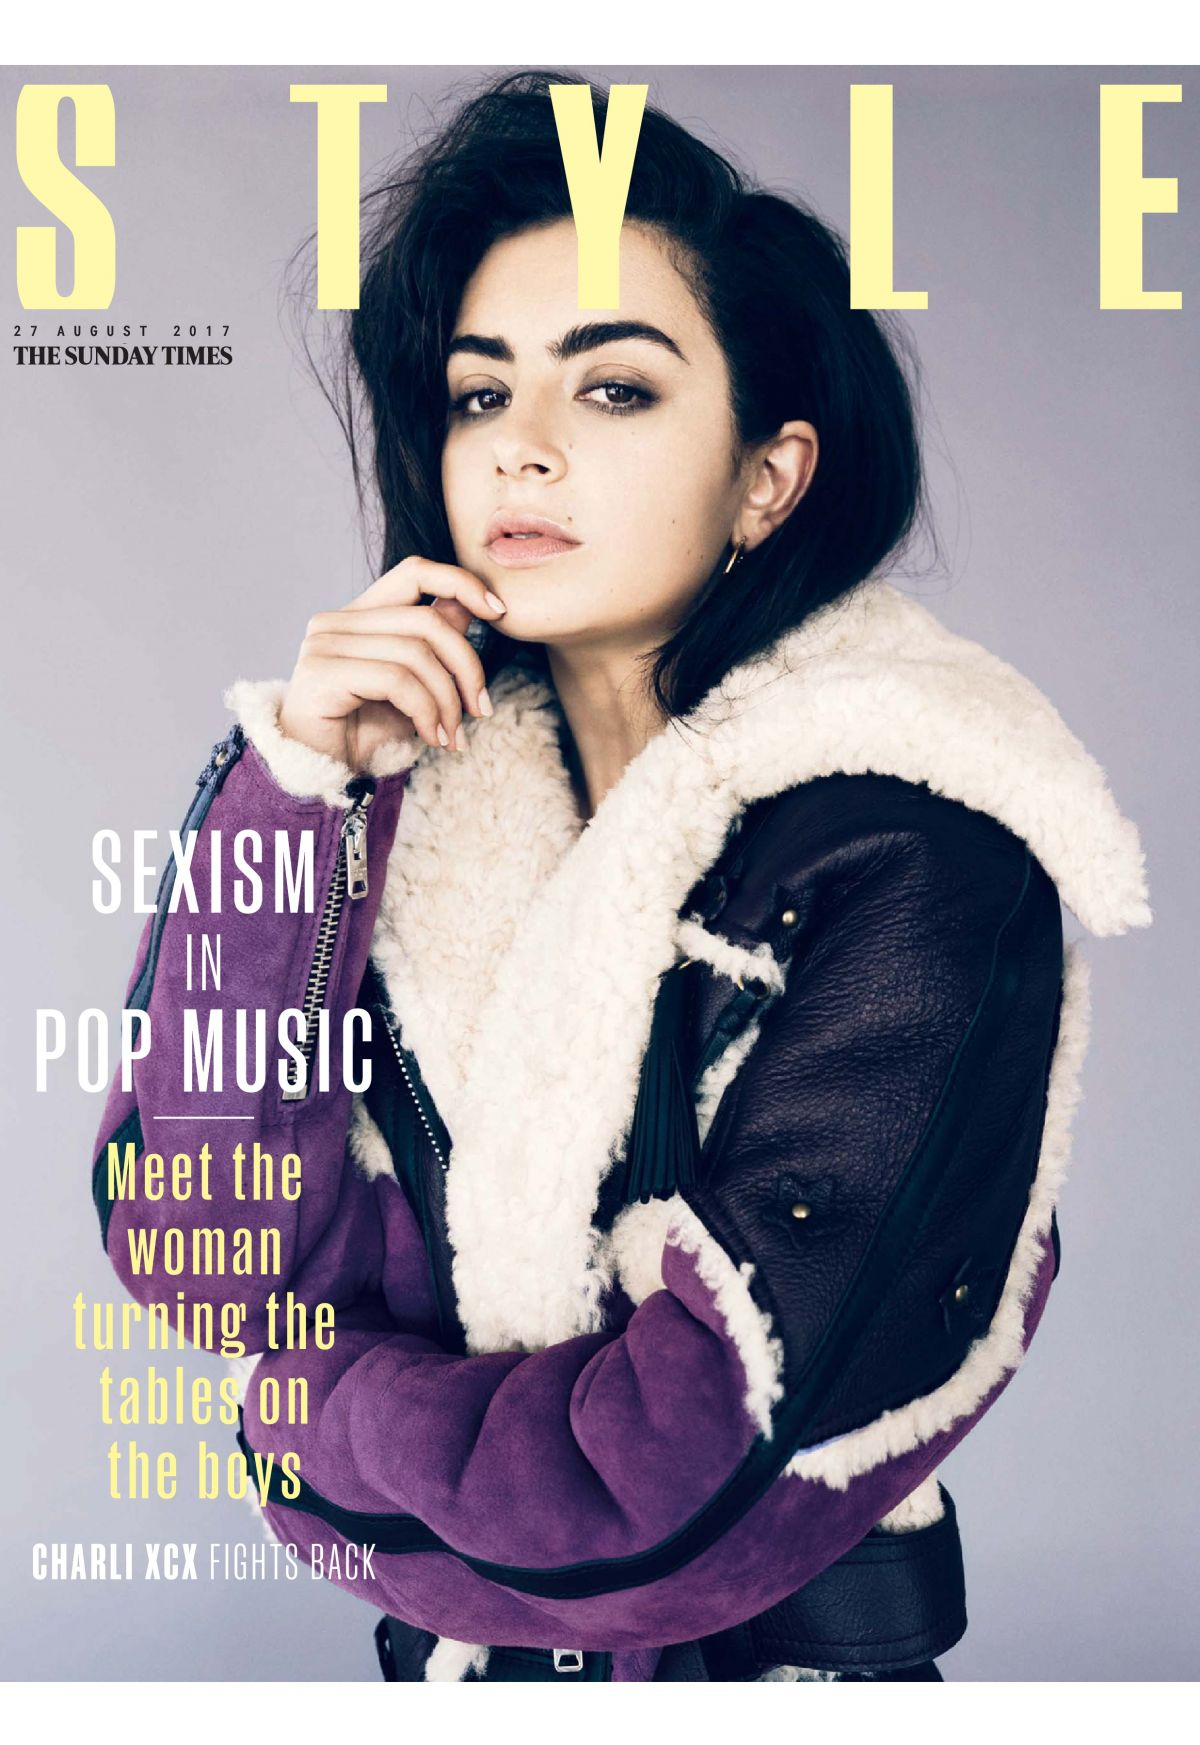 CHARLI XCX at Sunday Times Style Magazine, August 2017